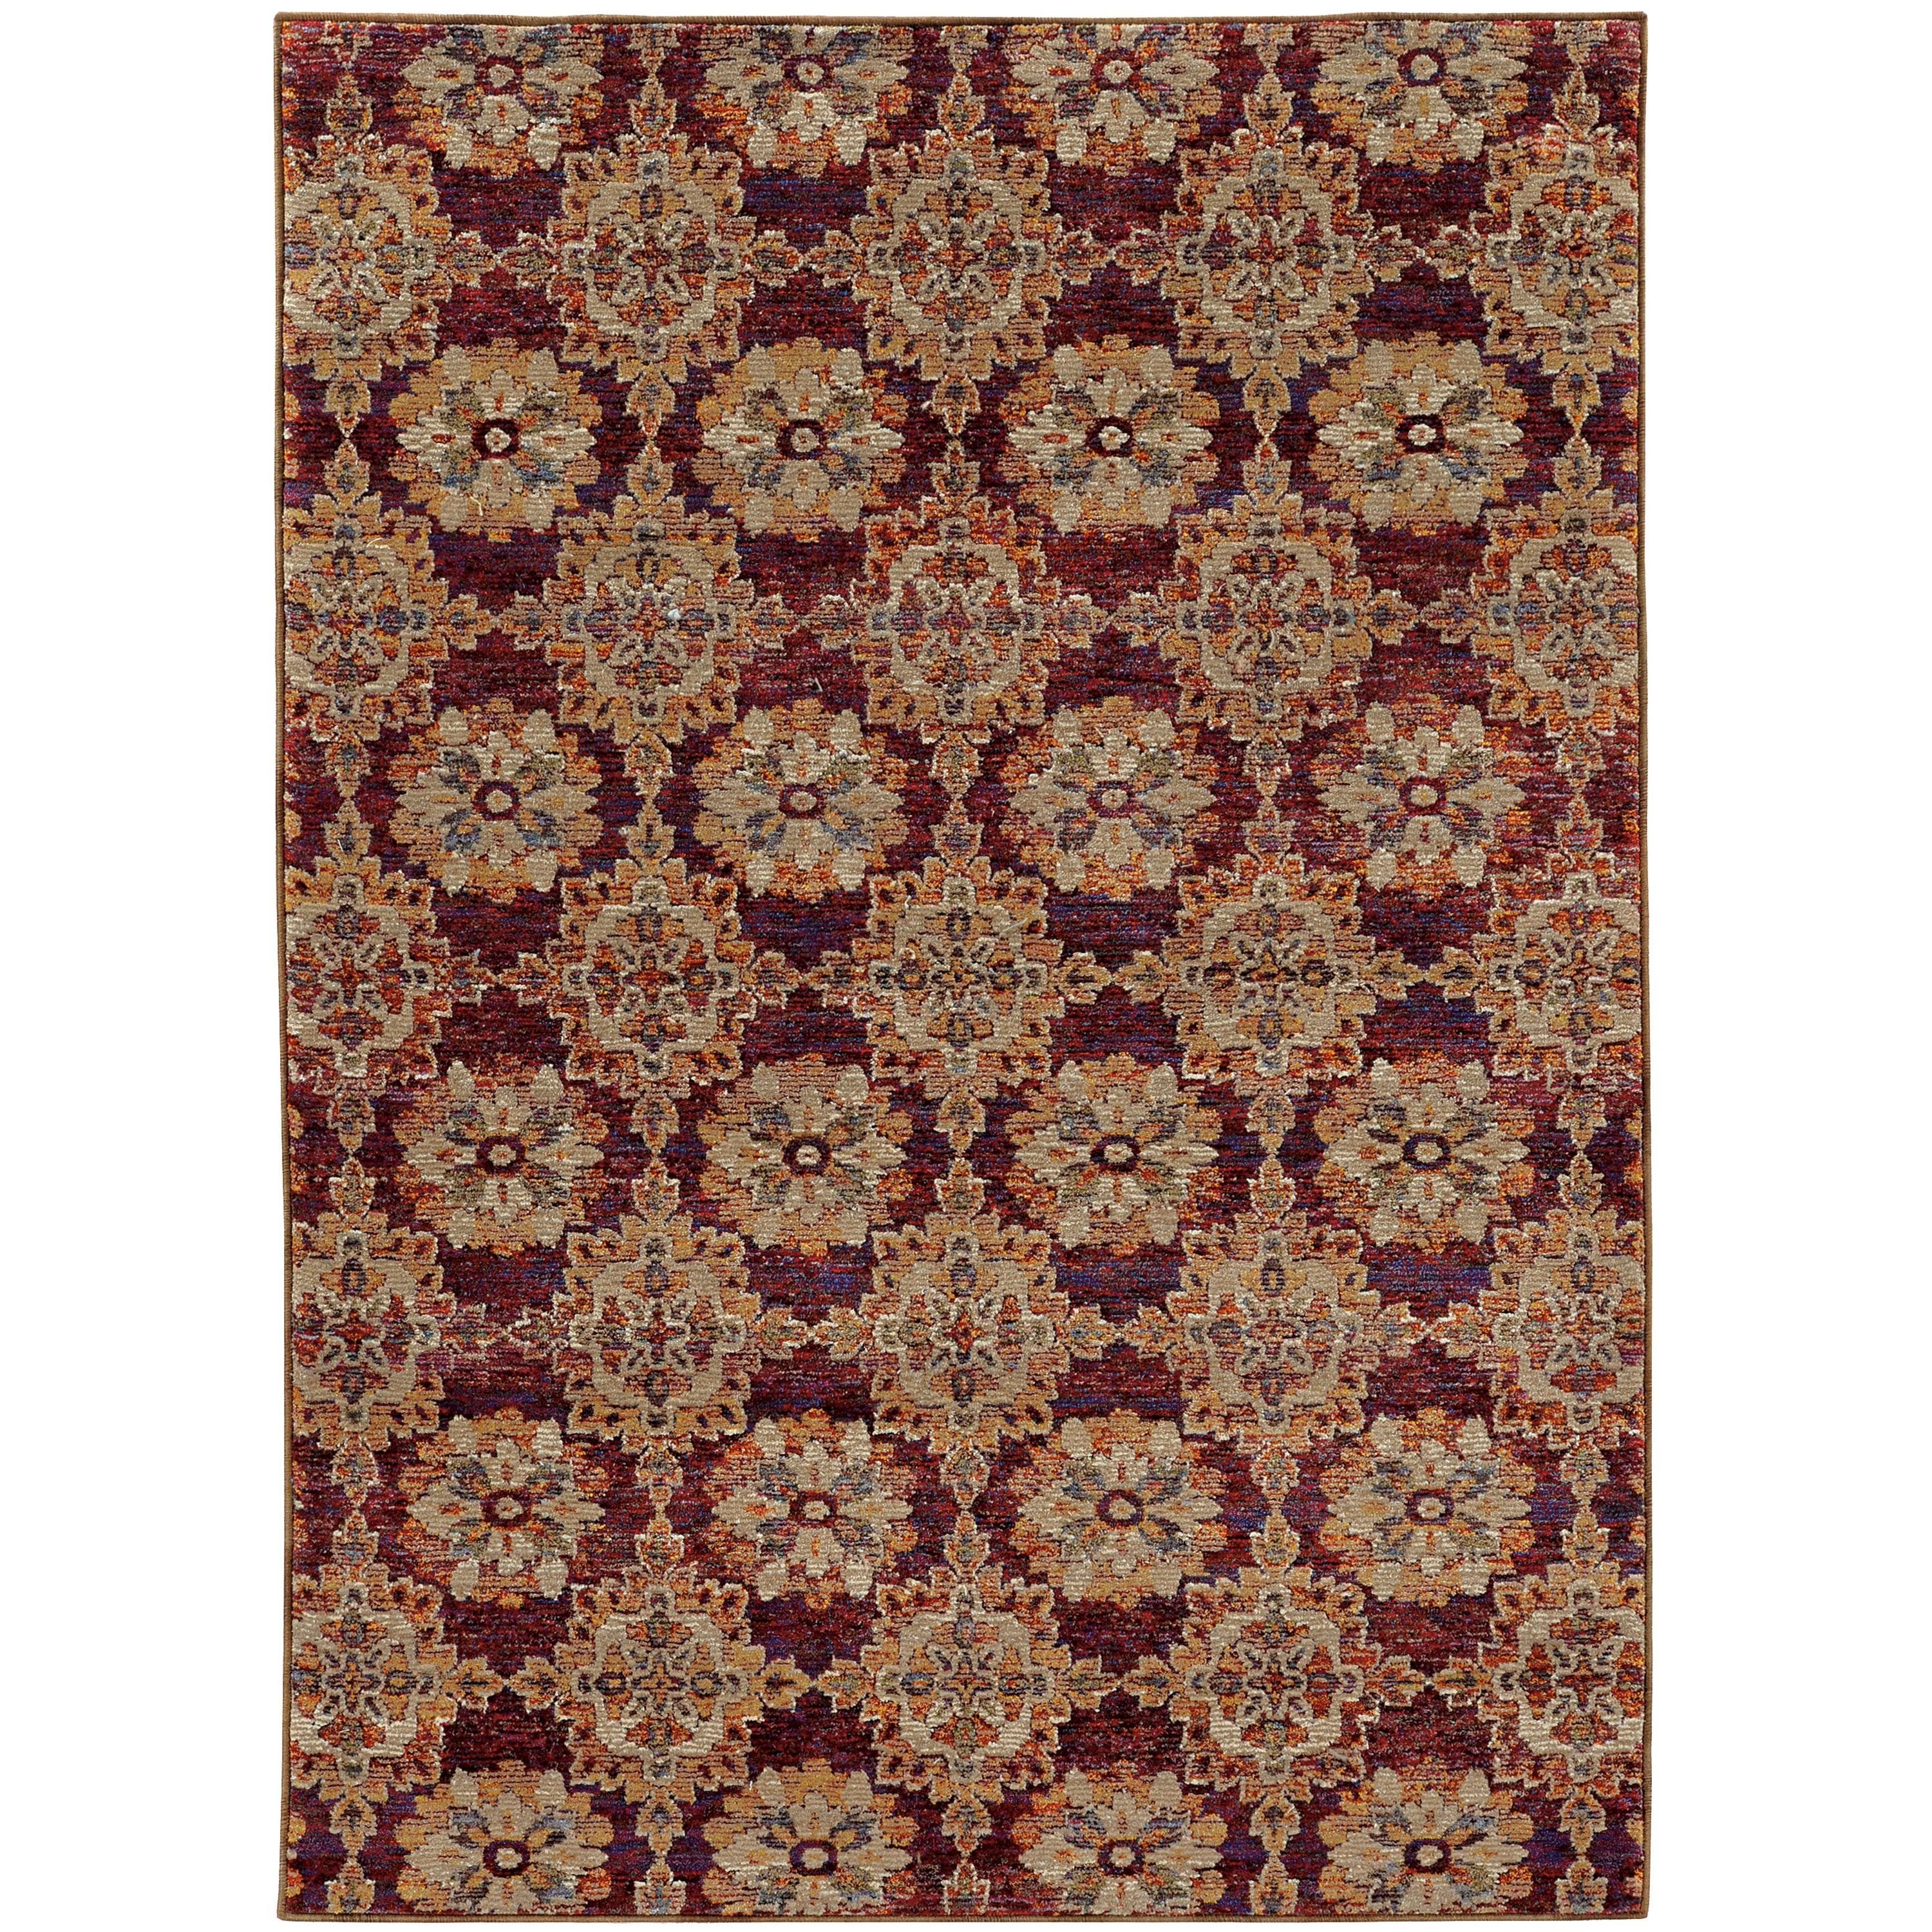 "Style Haven Floral Panel Medallions Red/ Gold Rug (6' 7 x 9' 6) (6' 7"" X 9' 6""), Size 6'7 x 9'6 (Nylon, Oriental)"